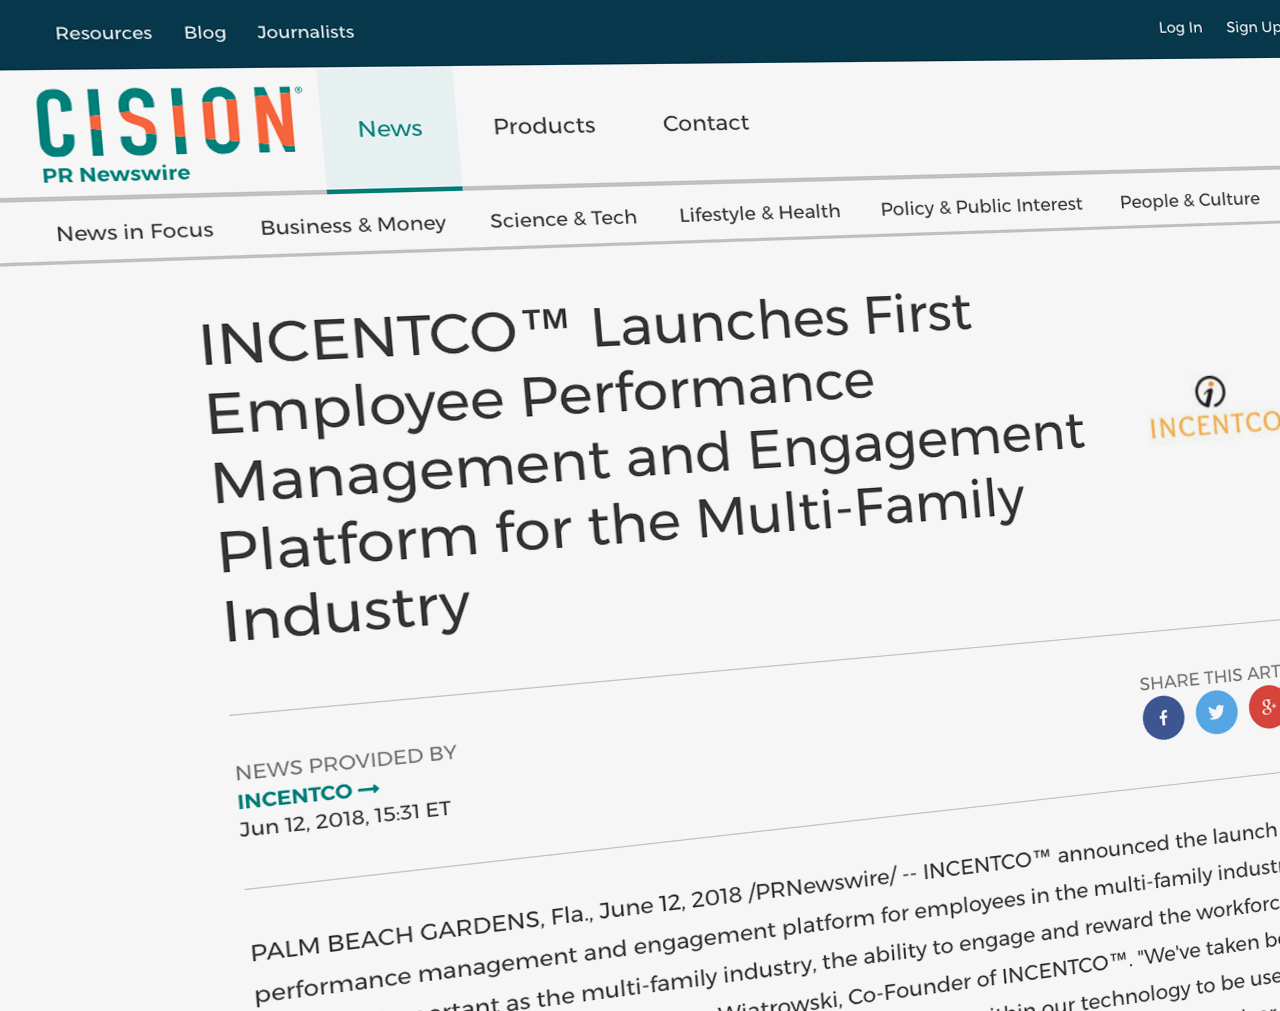 INCENTCO™ Launches First Employee Performance Management and Engagement Platform for the Multi-Family Industry